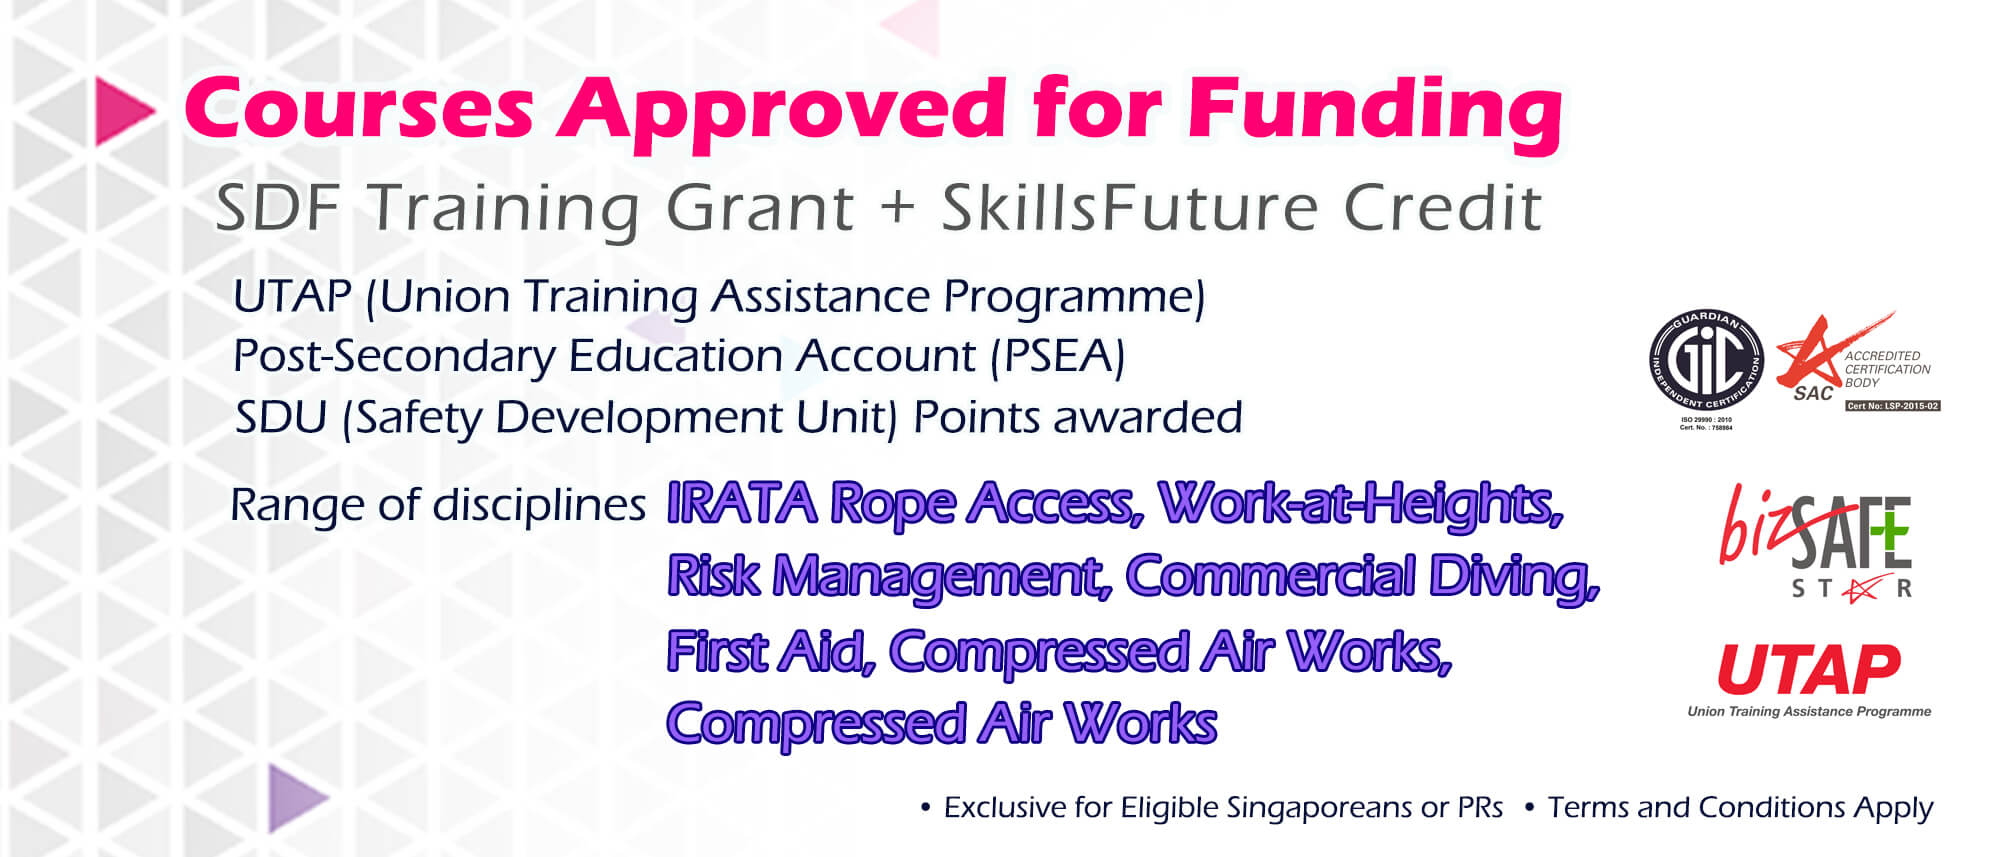 Lists of courses that are approved for Funding